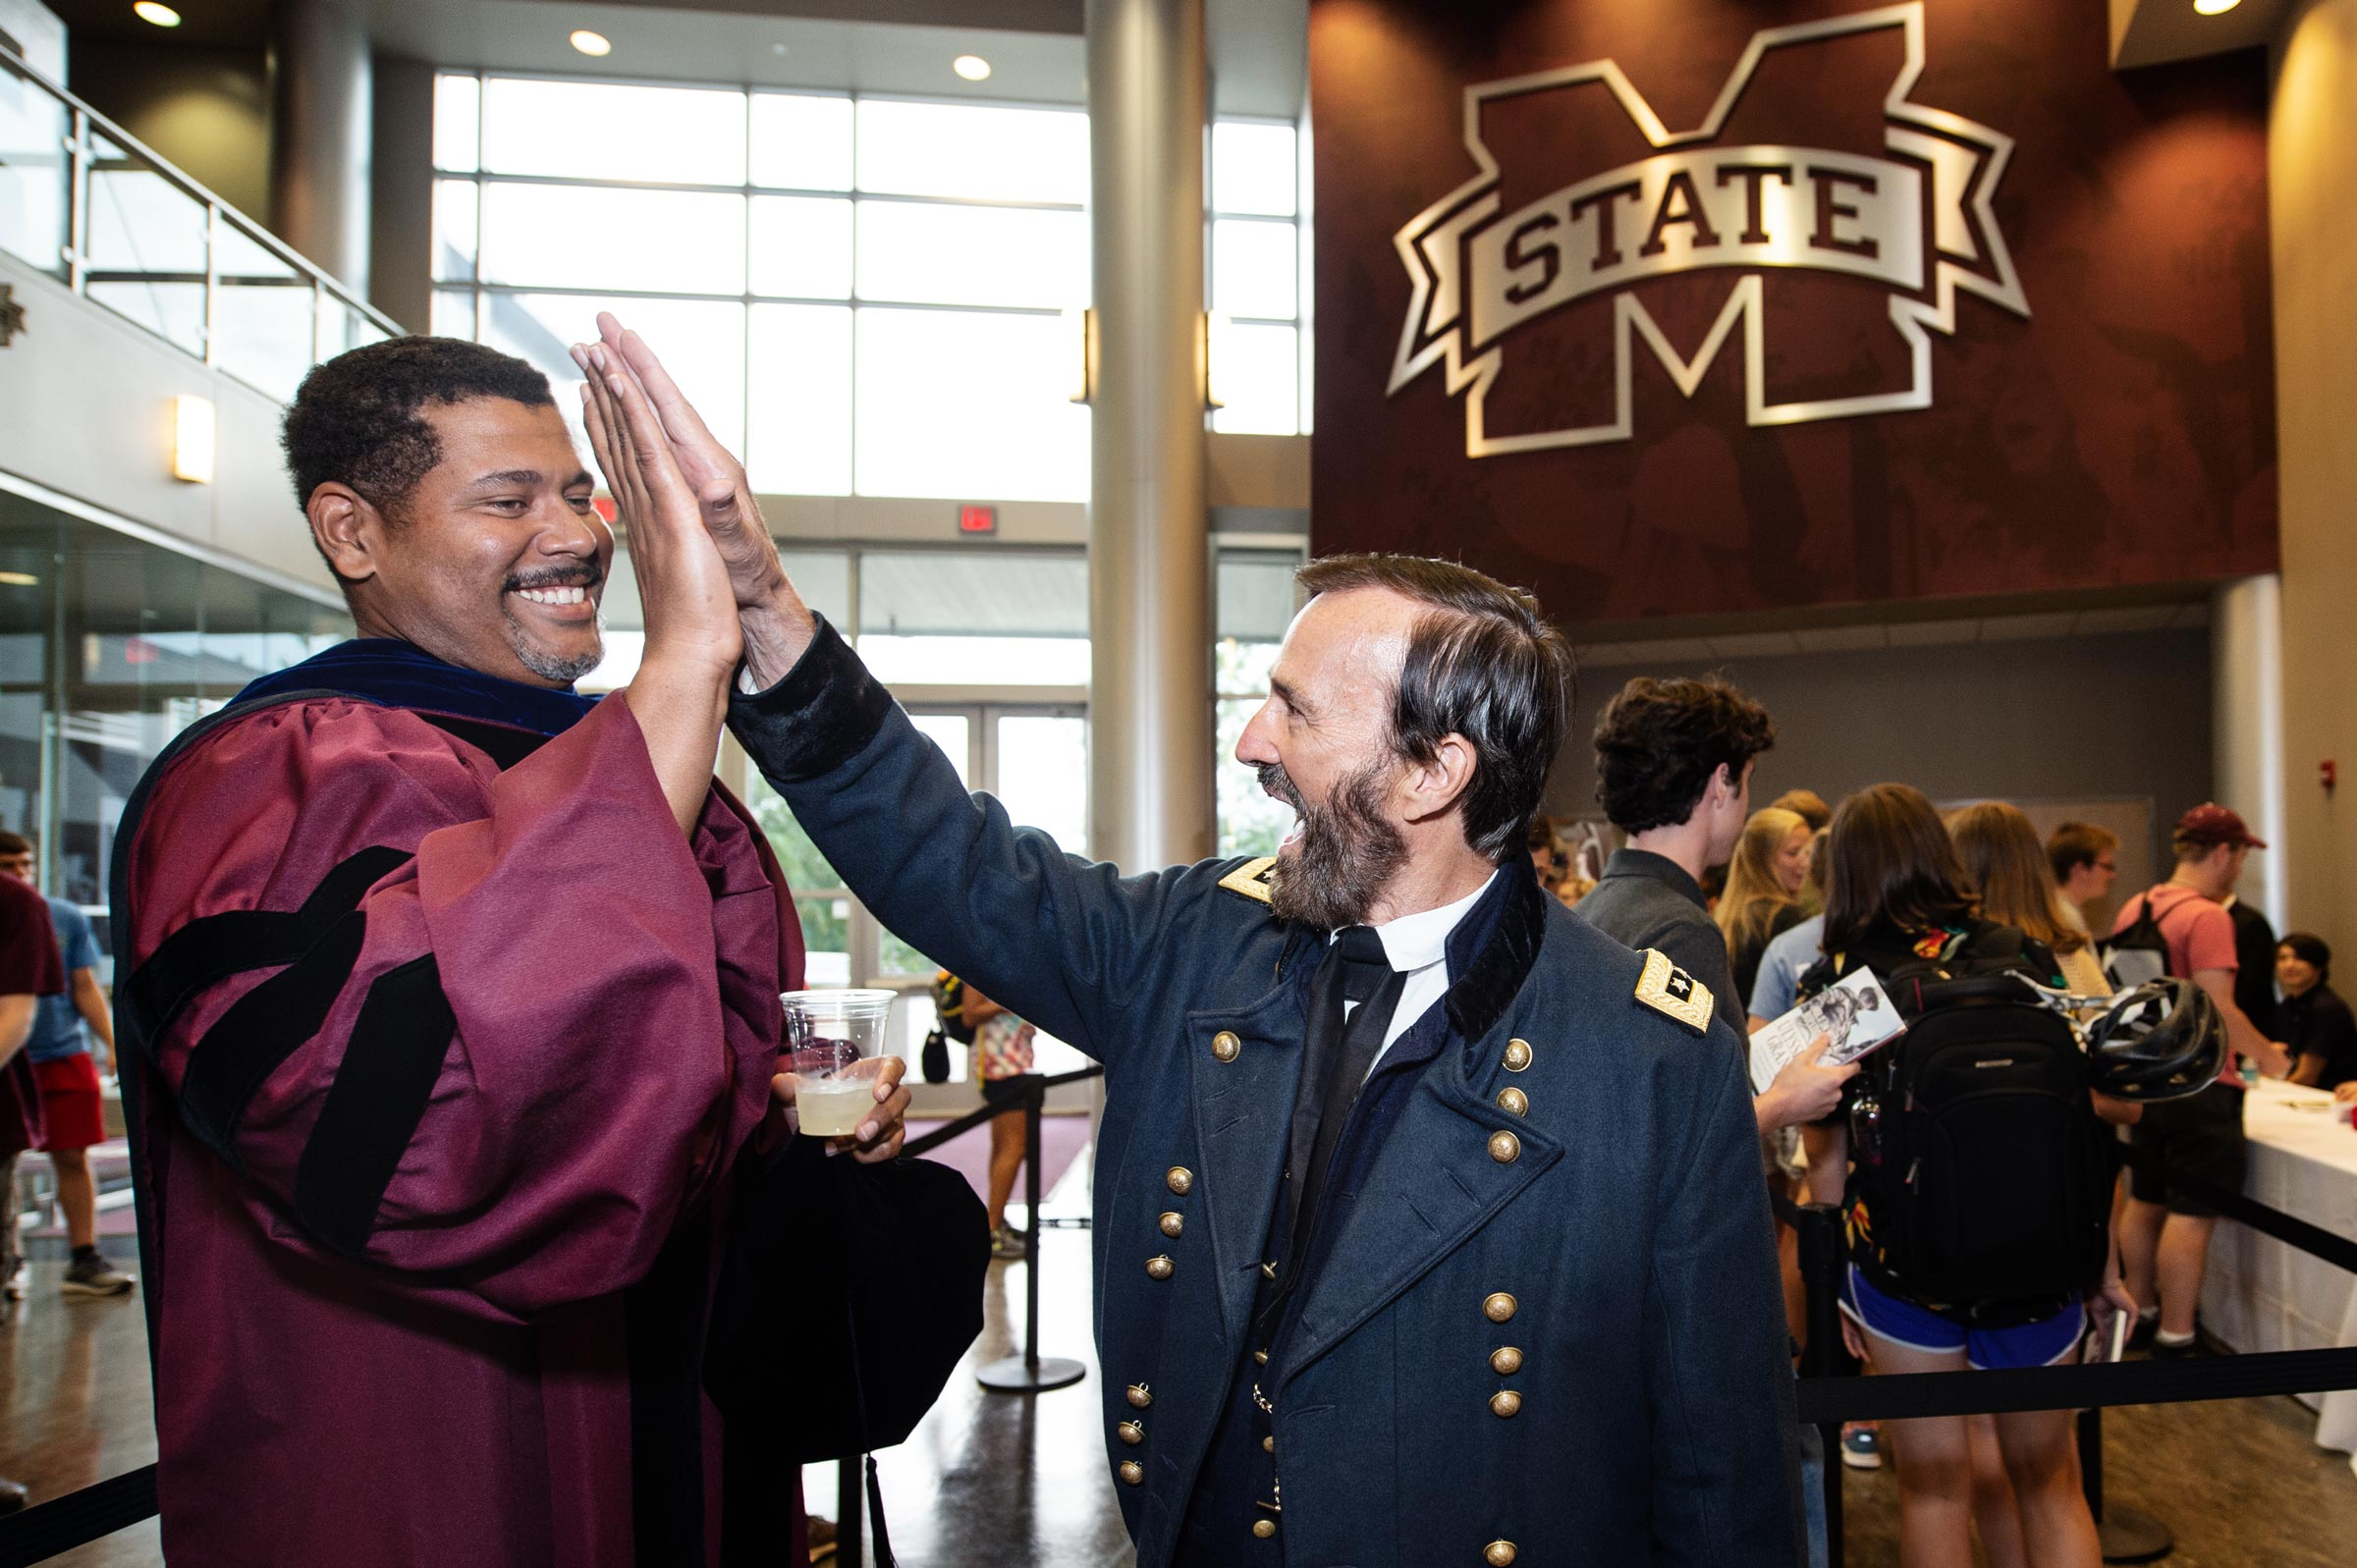 Ulysses S. Grant high-fives Professor Donald Shaffer following the Convocation ceremony in Humphrey Coliseum.